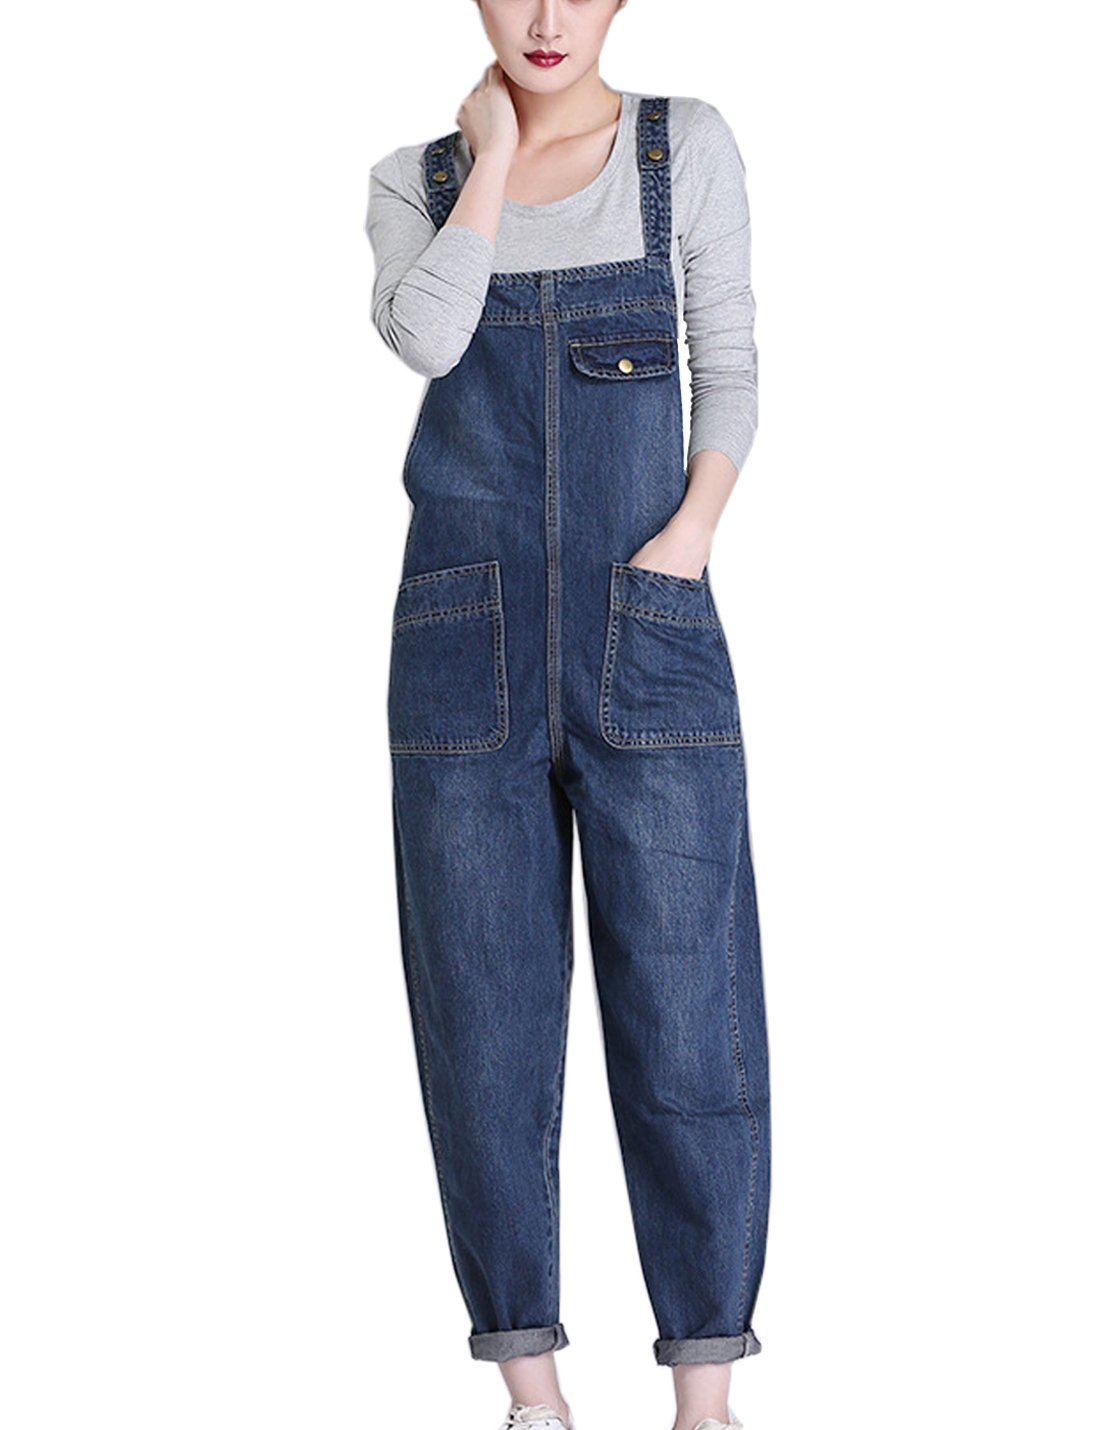 Flygo Women's Casual Denim Cropped Harem Overalls Pant Jeans Jumpsuits with Pockets